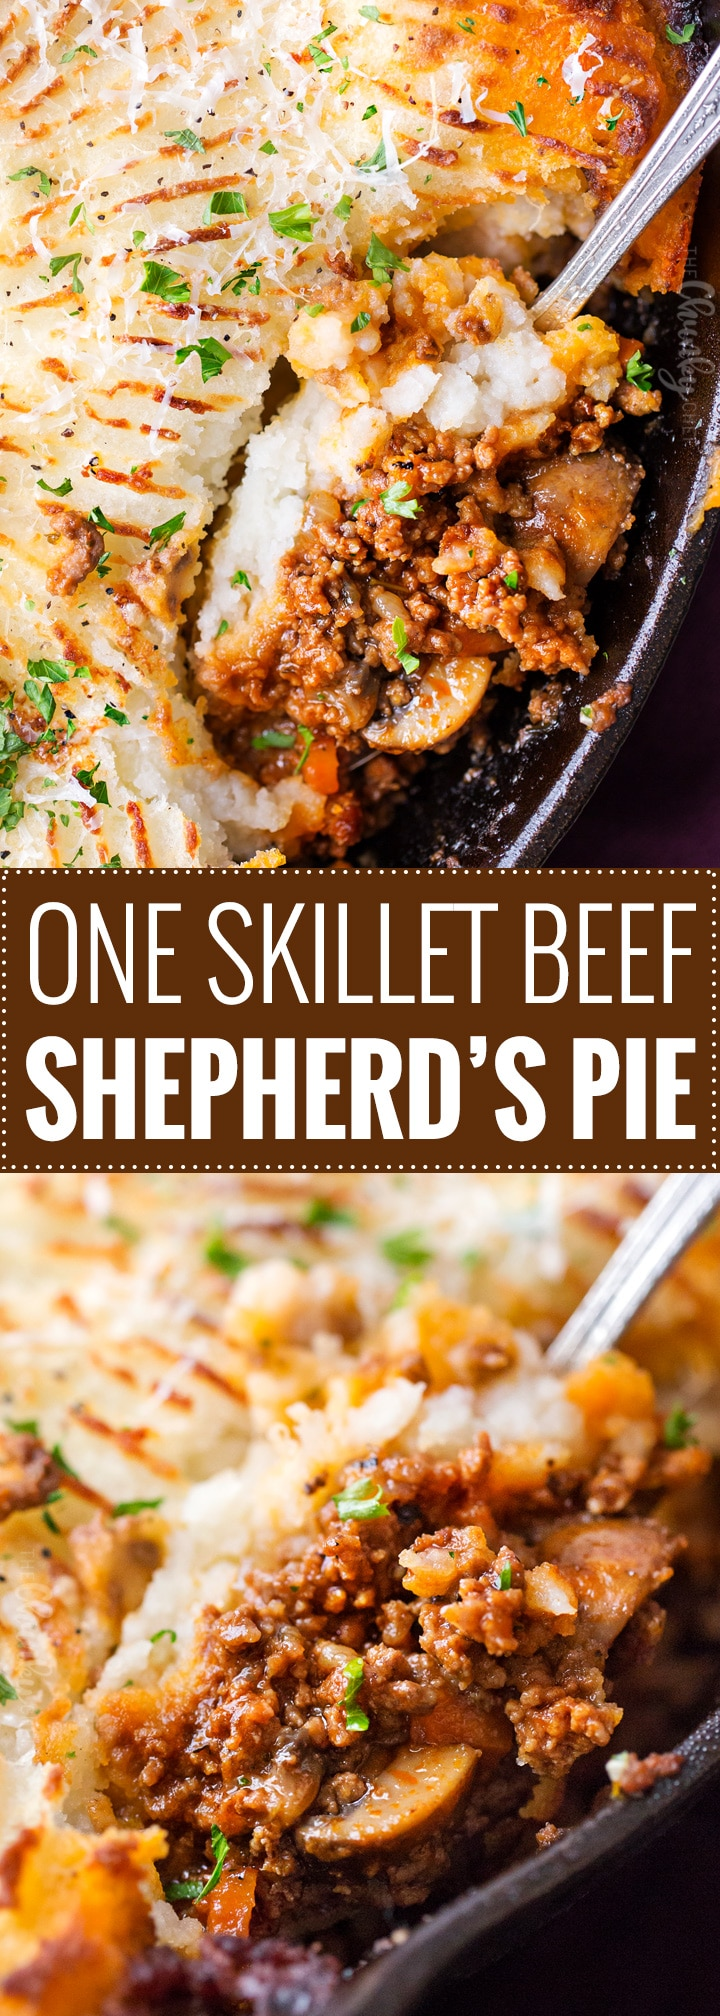 One Skillet Beef Shepherd's Pie Recipe | This rich and flavorful ground beef and vegetable mixture is topped with fluffy mashed potatoes and baked, all in ONE skillet!  Technically cottage pie (since using beef), this version will be a family favorite dinner recipe! | https://thechunkychef.com | #shepherd'spie #cottagepie #groundbeefrecipe #oneskillet #onepot #mashedpotatoes